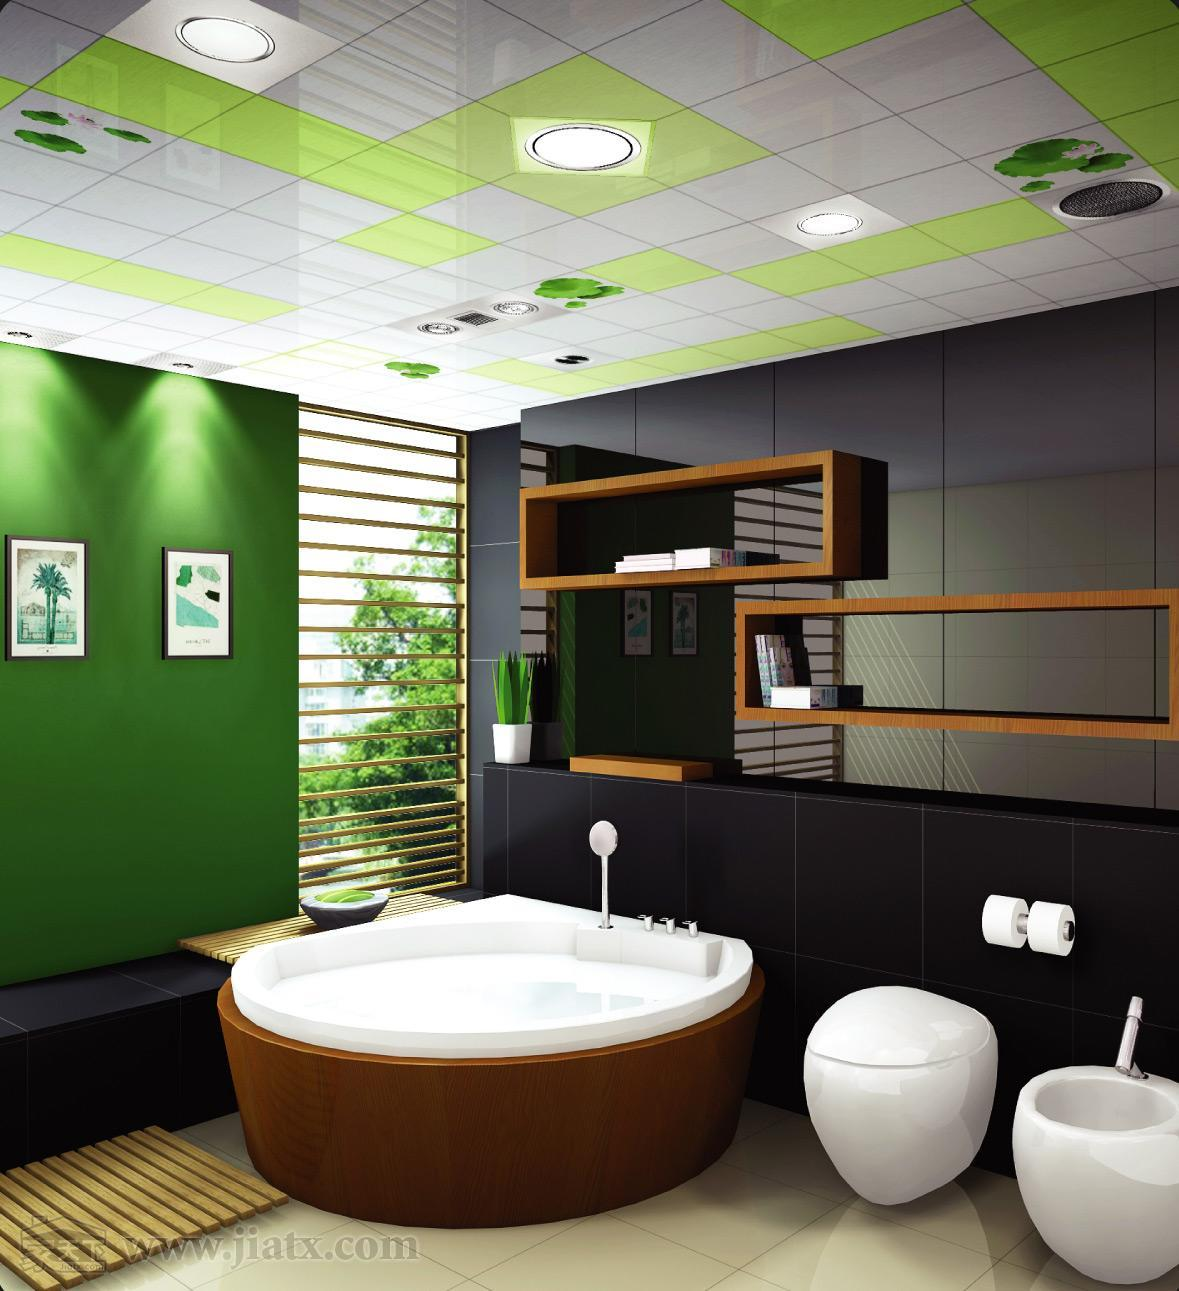 Bathroom ceiling design bathroom design - Bathroom false ceiling designs ...